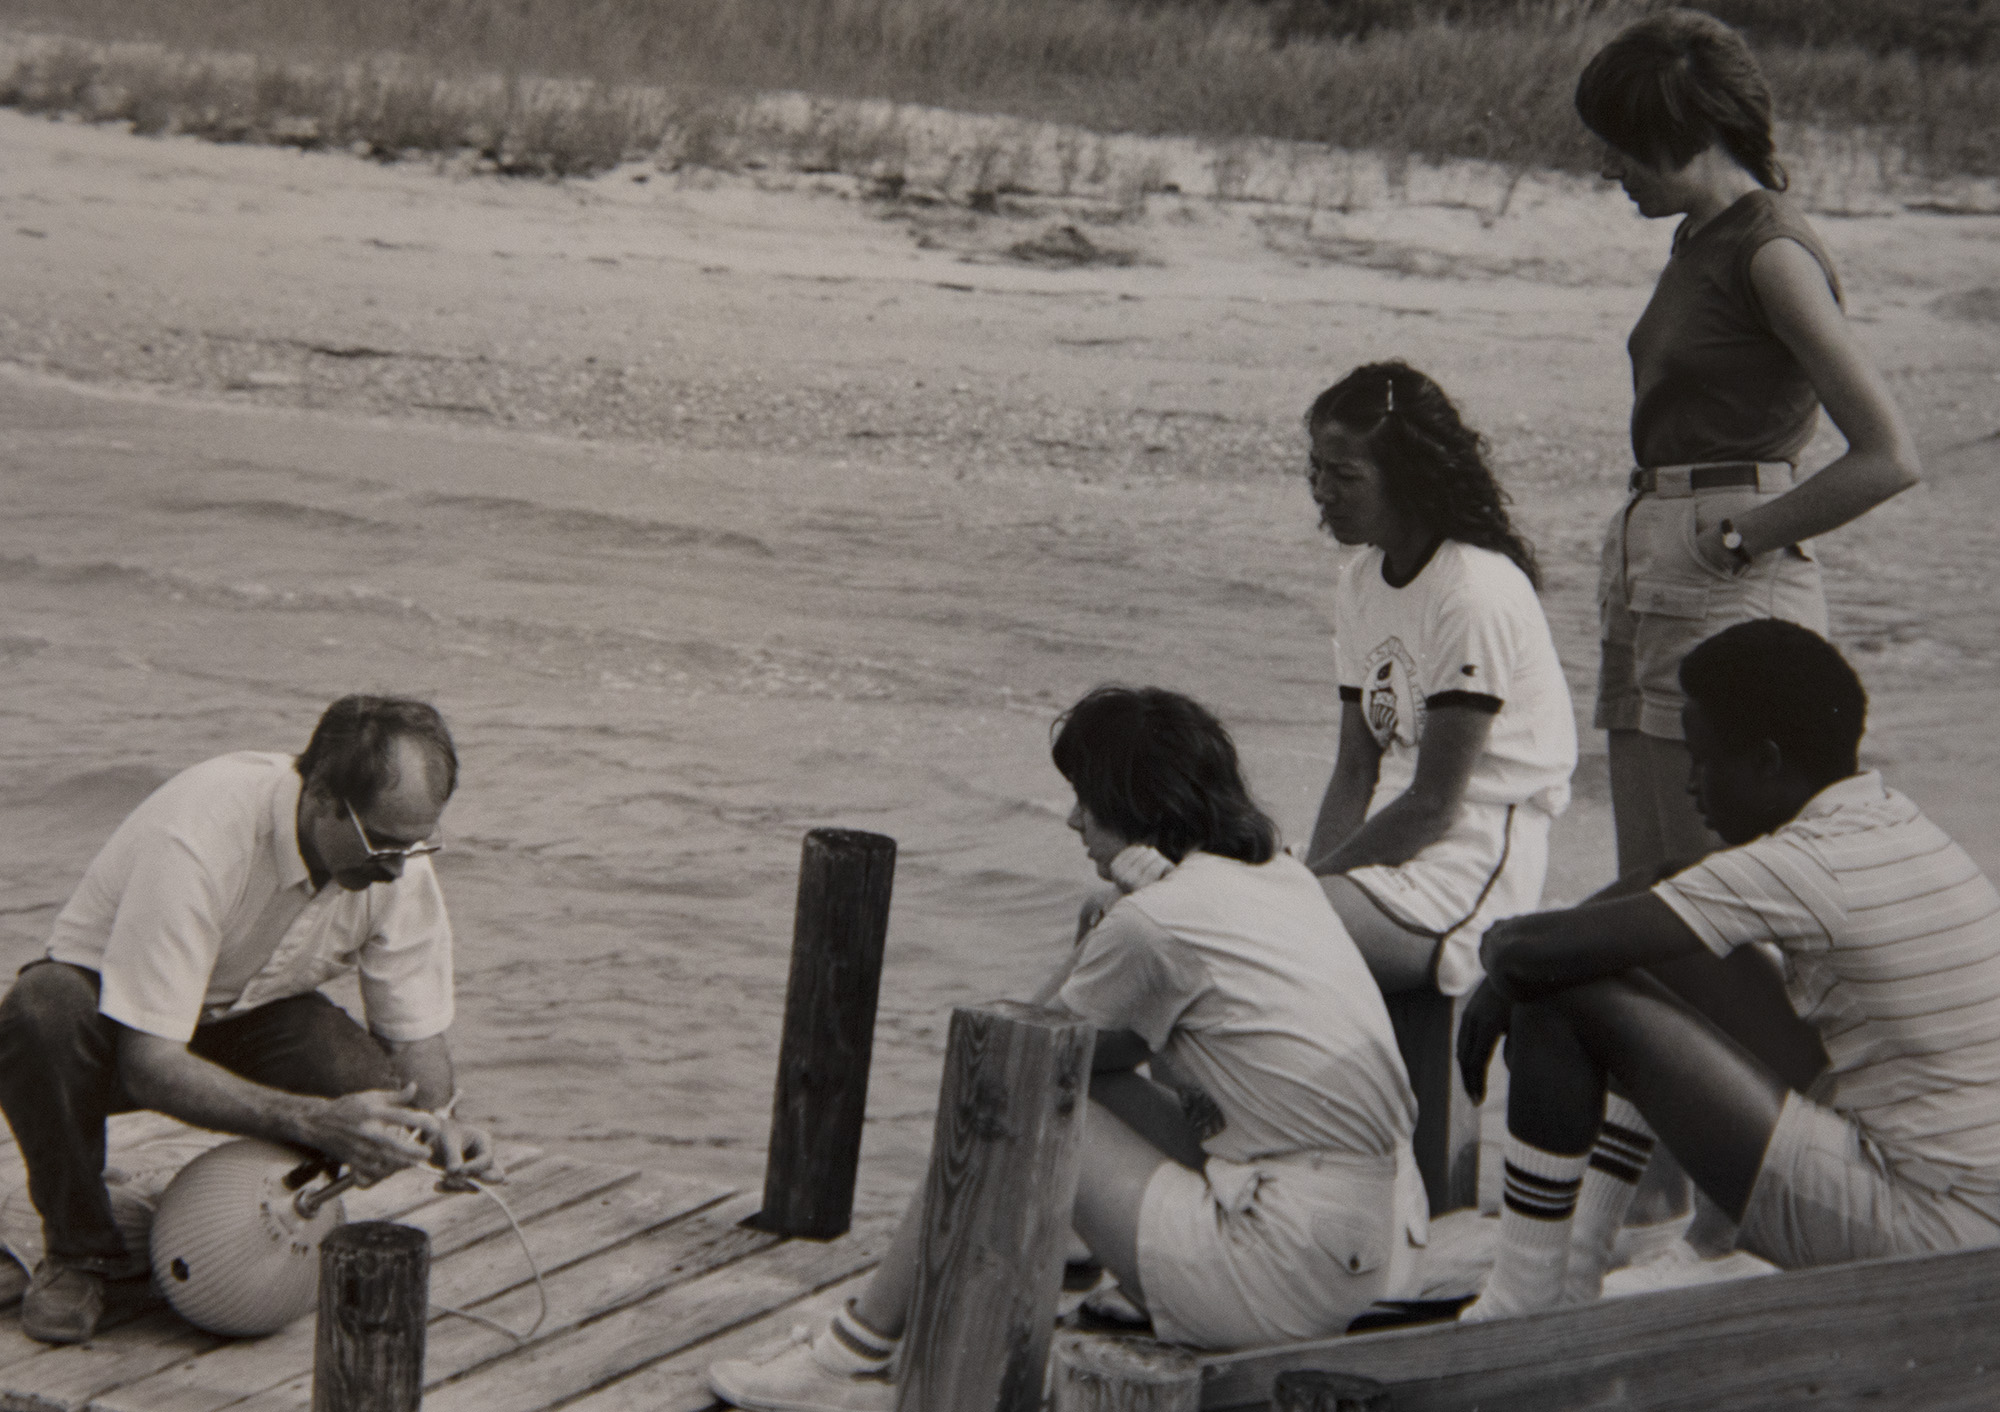 an older man shoes a group of young people how to do sediment sampling